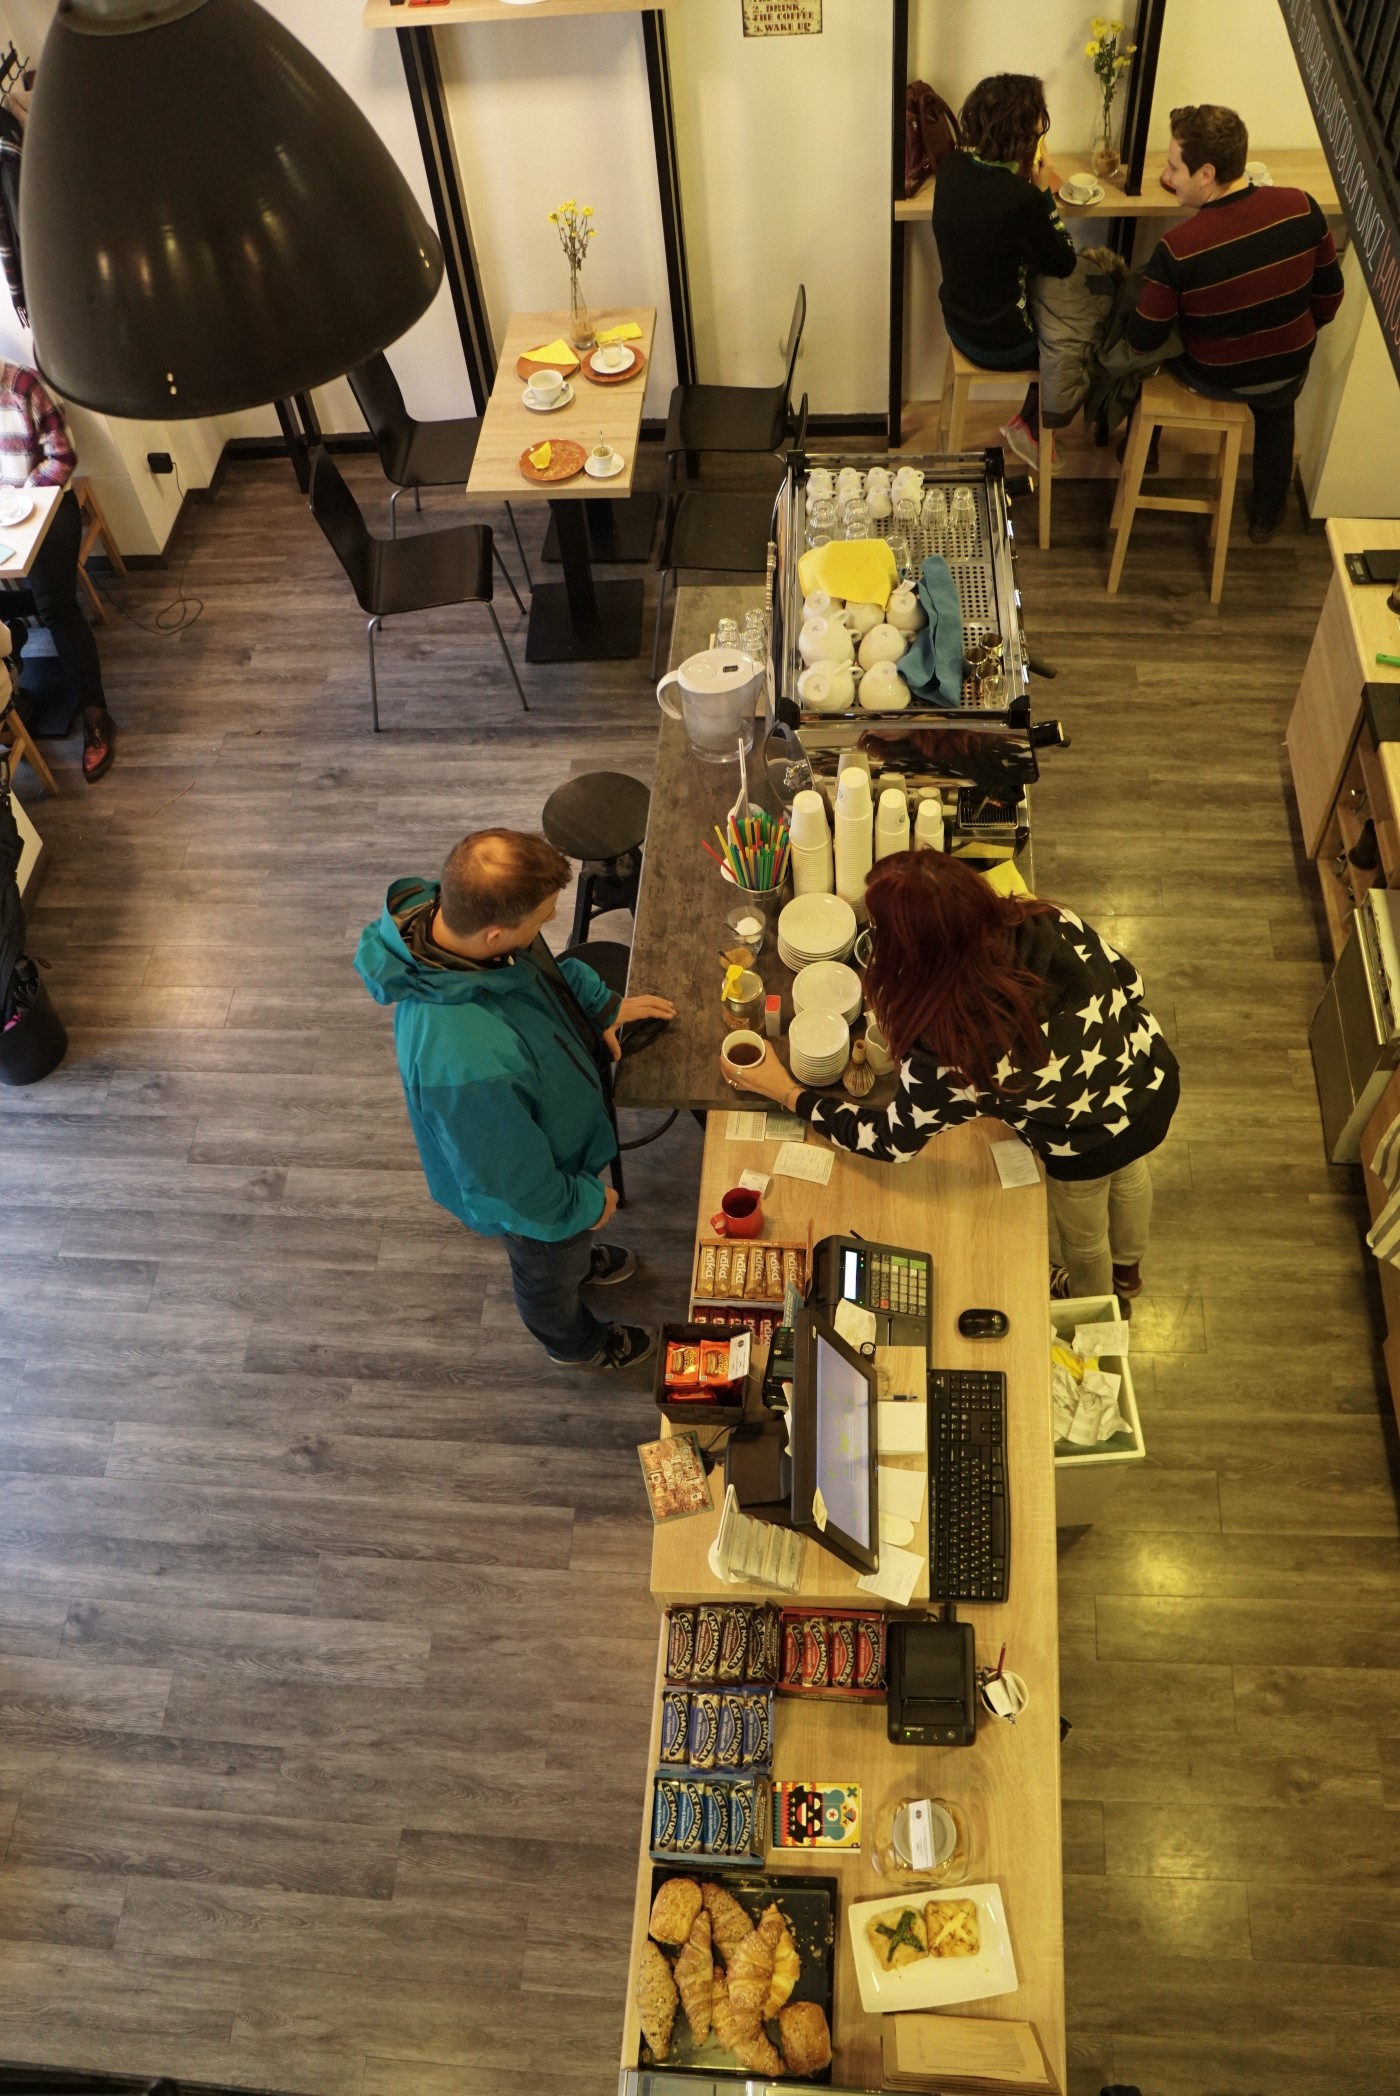 8 Great Cafes You Must Visit In Budapest By Dani Bordiniuc